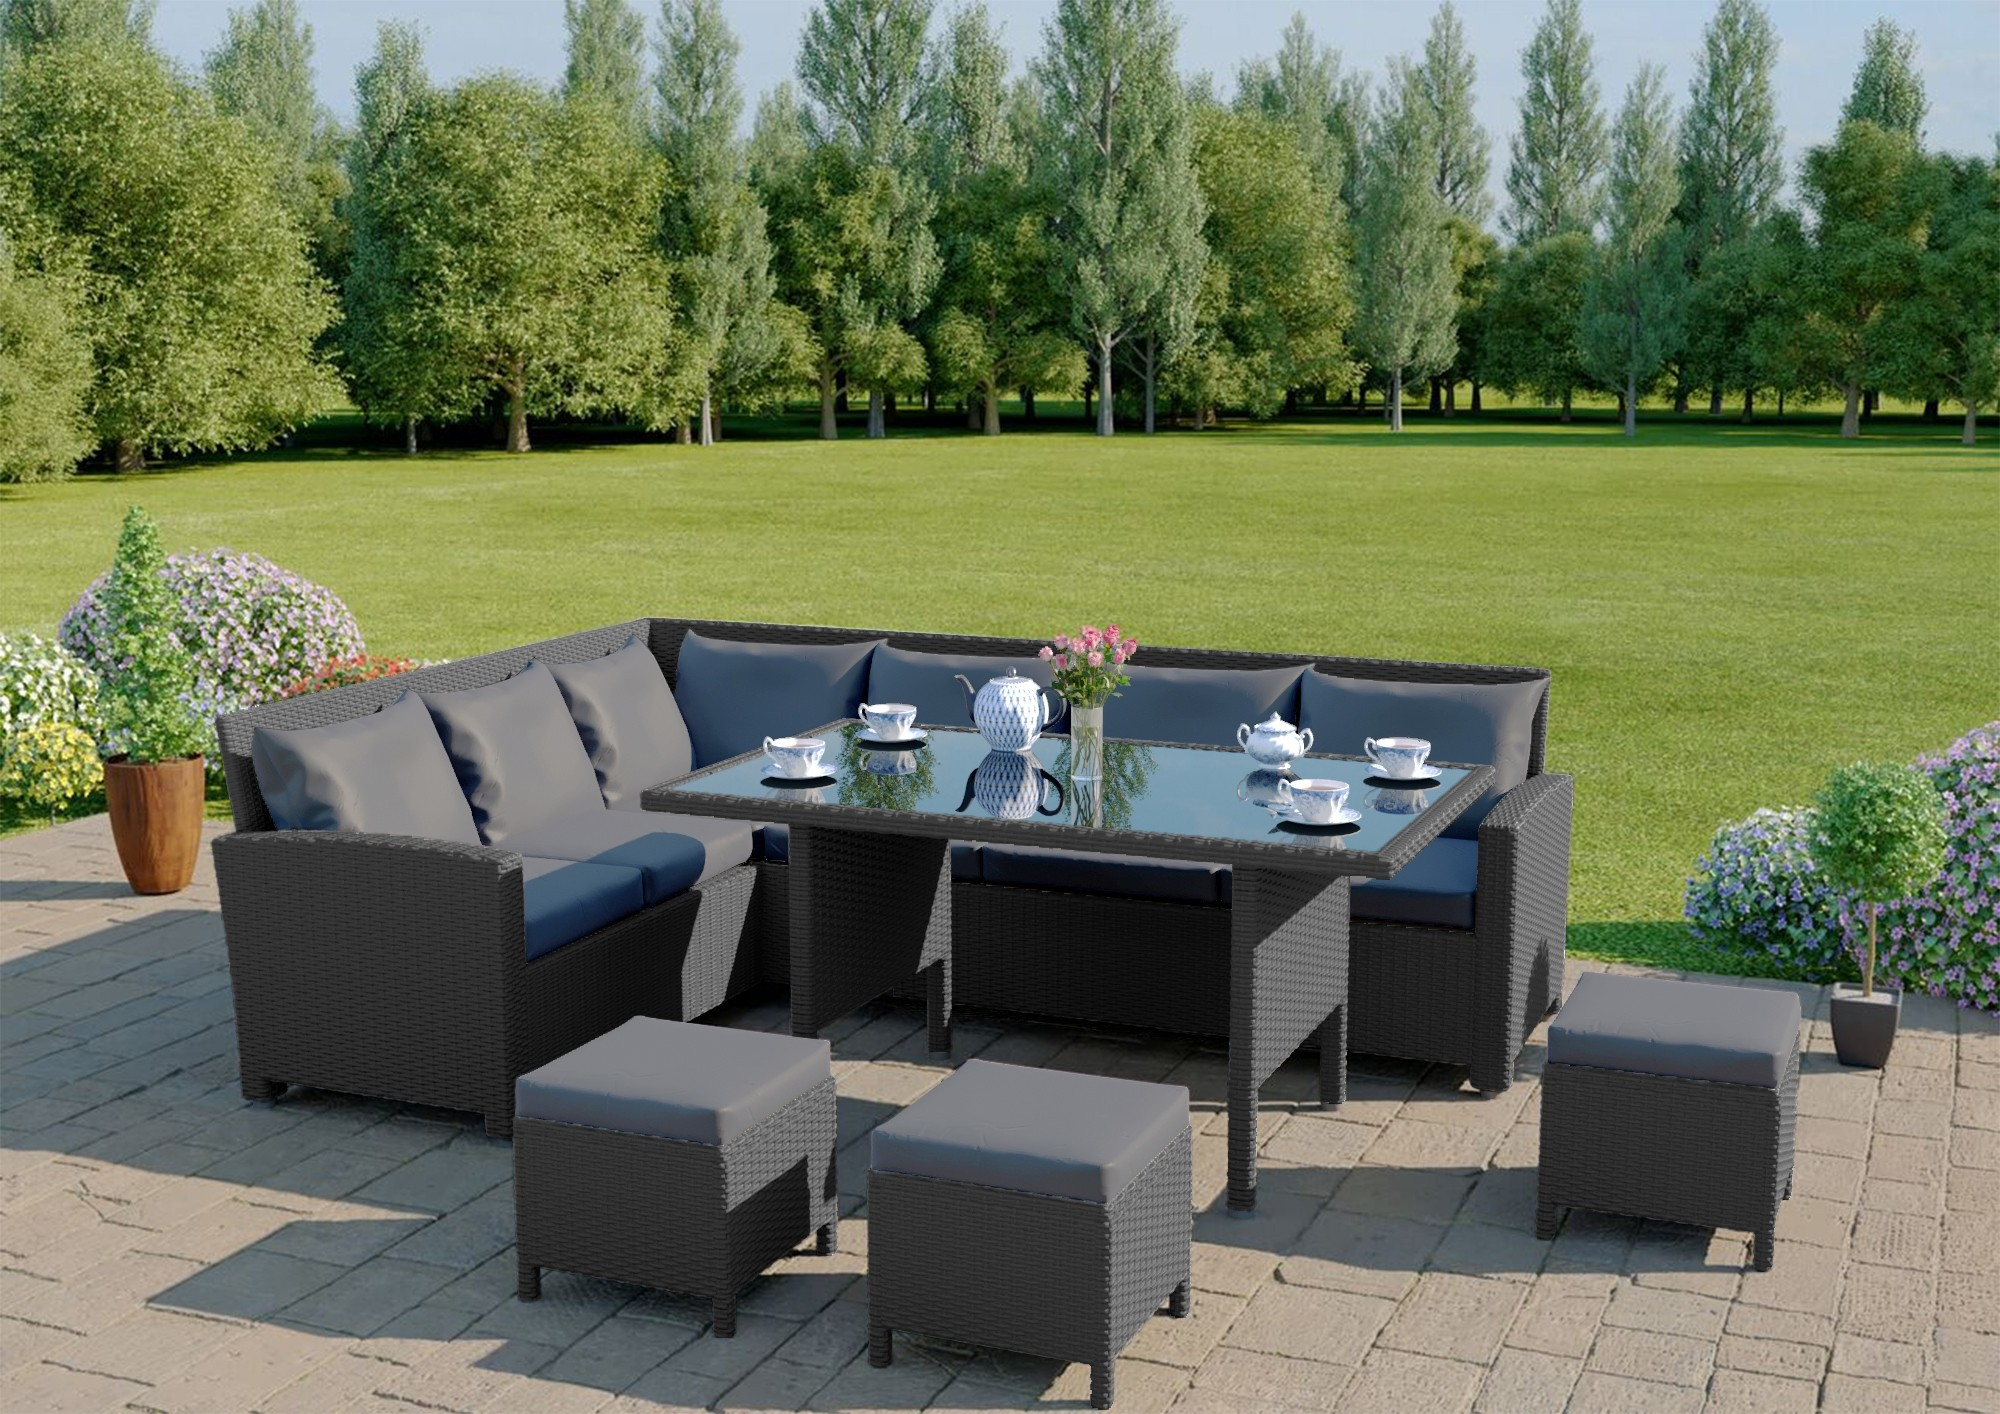 9 Seater Corner Garden Dining High Gloss Table Set Abreo